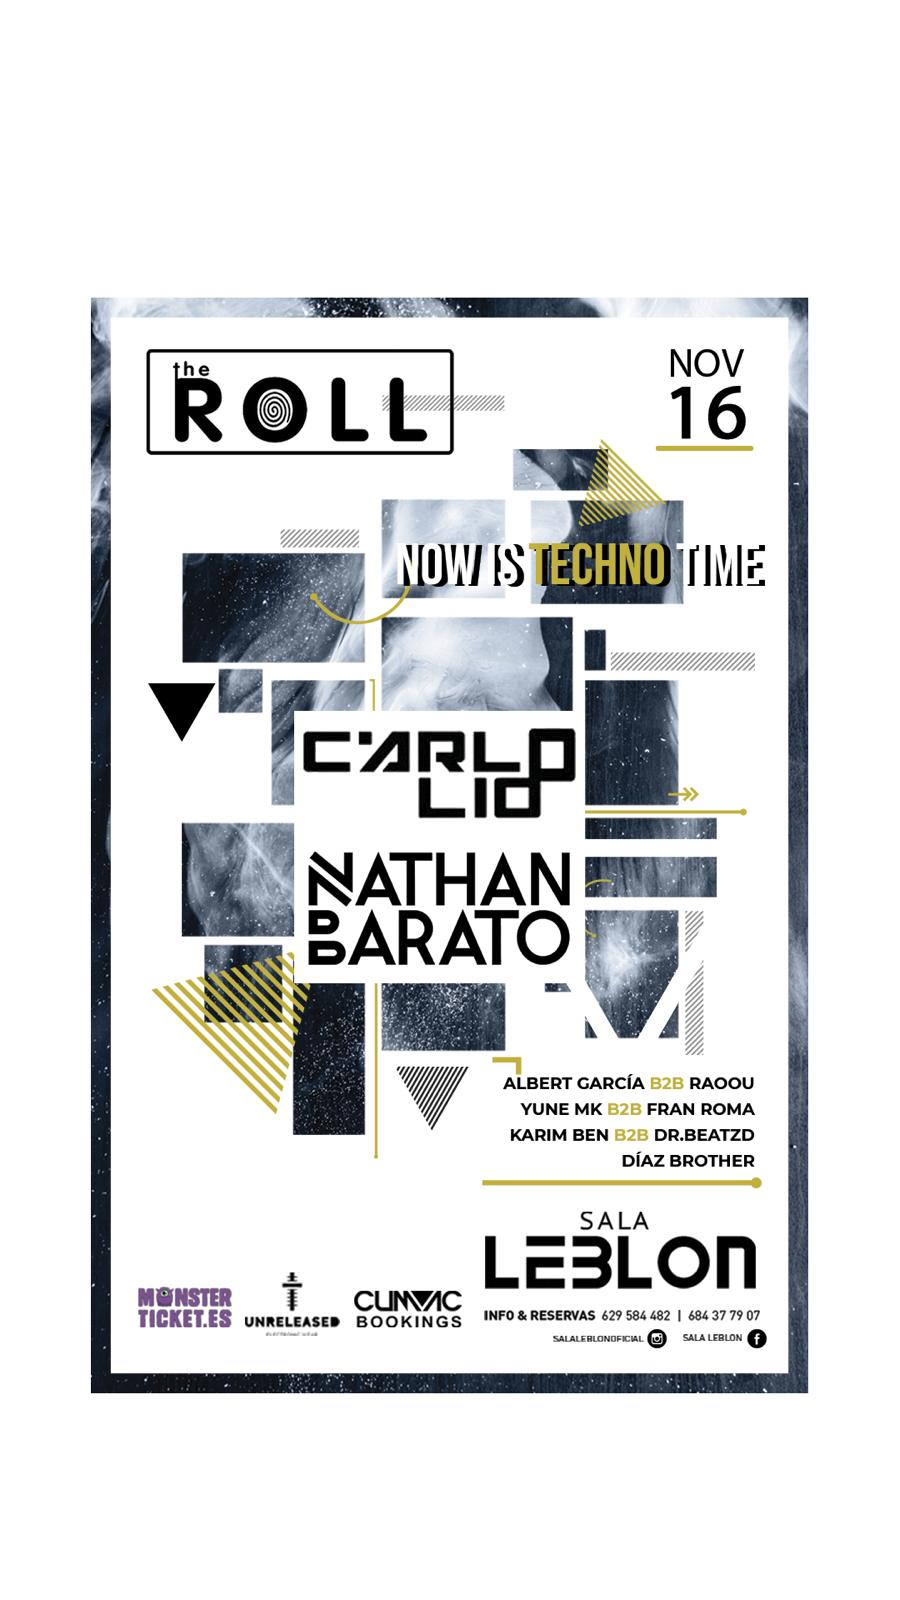 Now is Techno Time @ The Roll